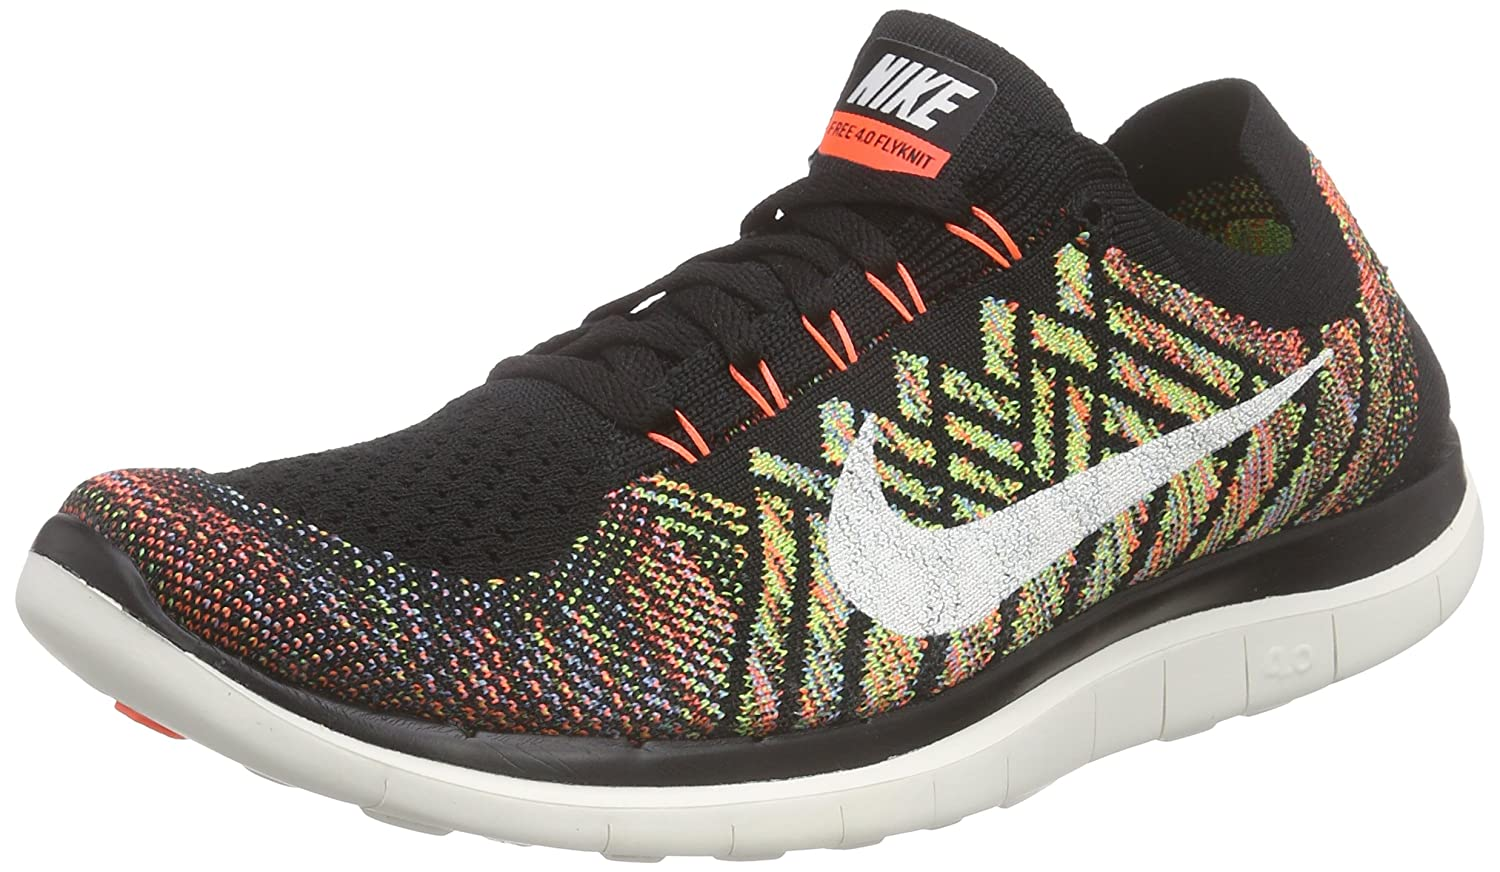 Intelligent Nike Flyknit Lunar 3 Men's Shoes Cool Grey/Green Strike/Summit White/Black Width D Medium